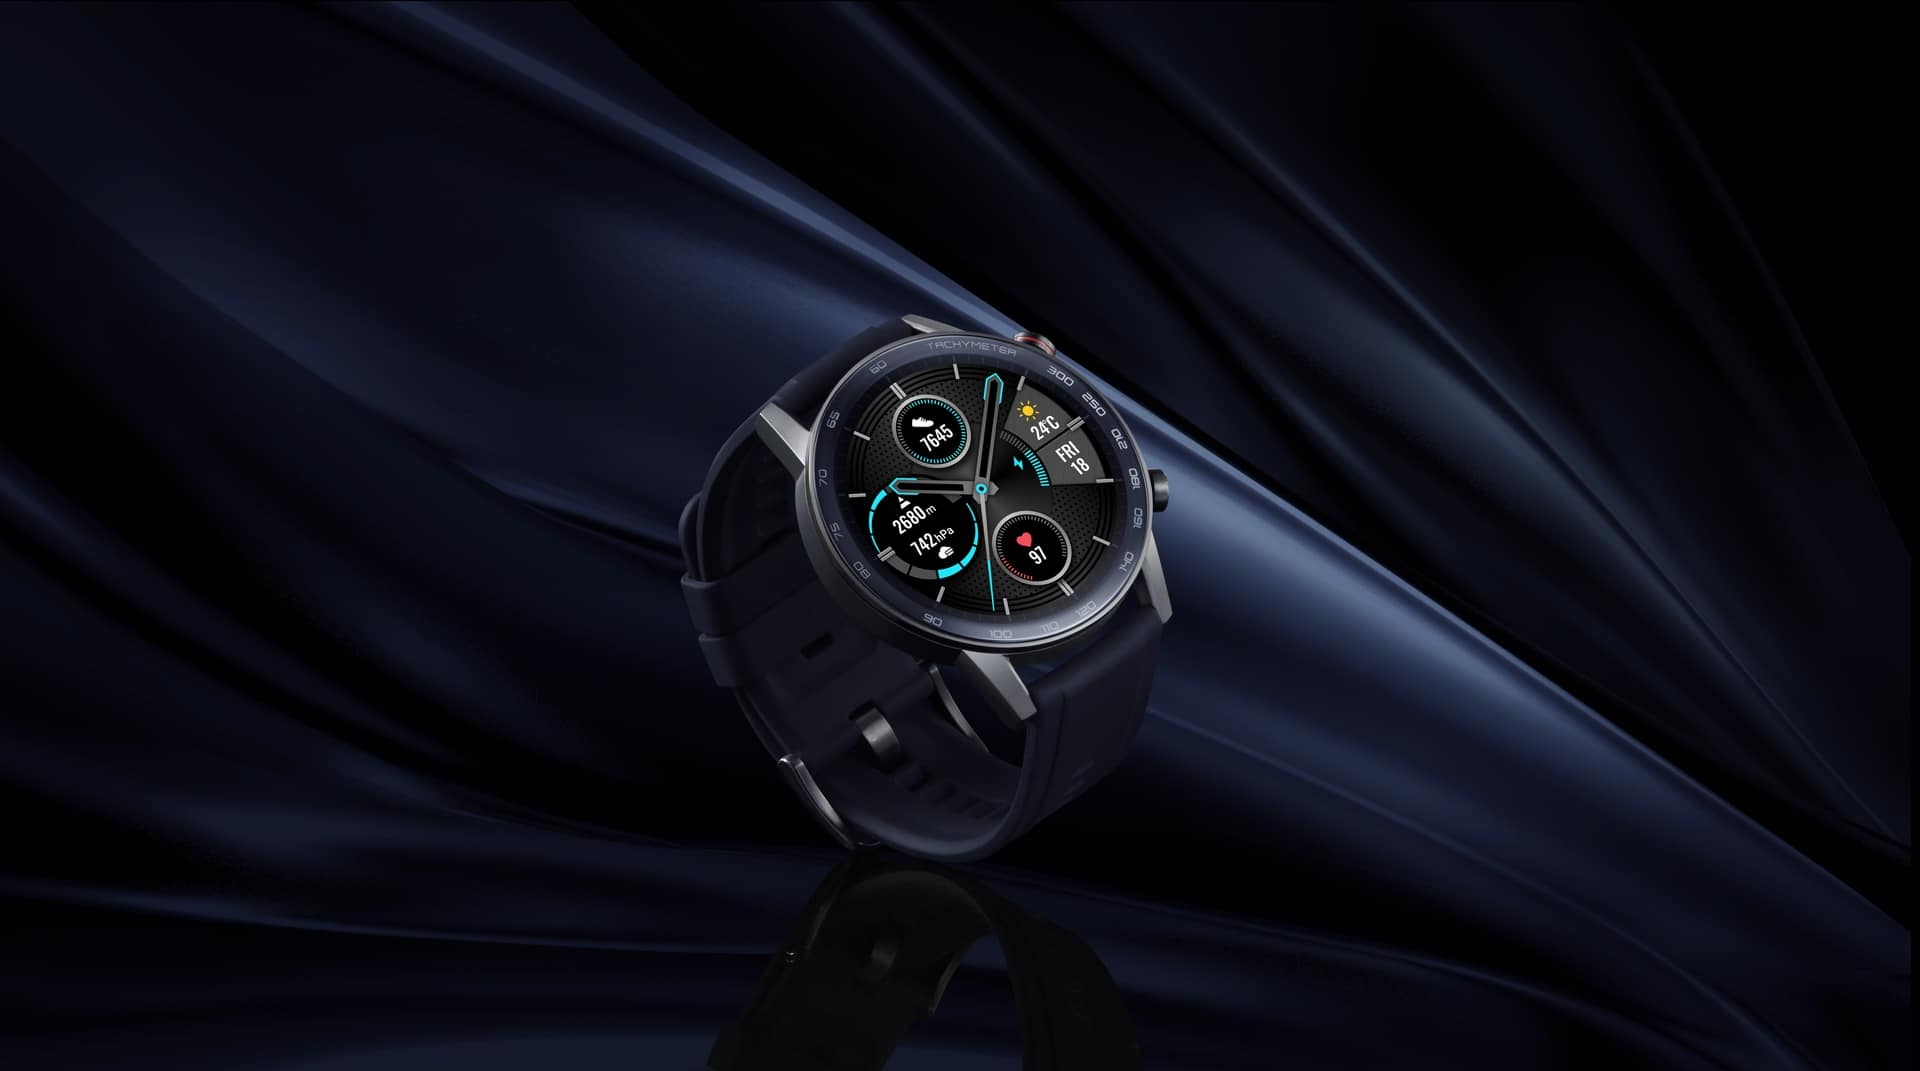 HONOR MagicWatch 2 Charcoal Black